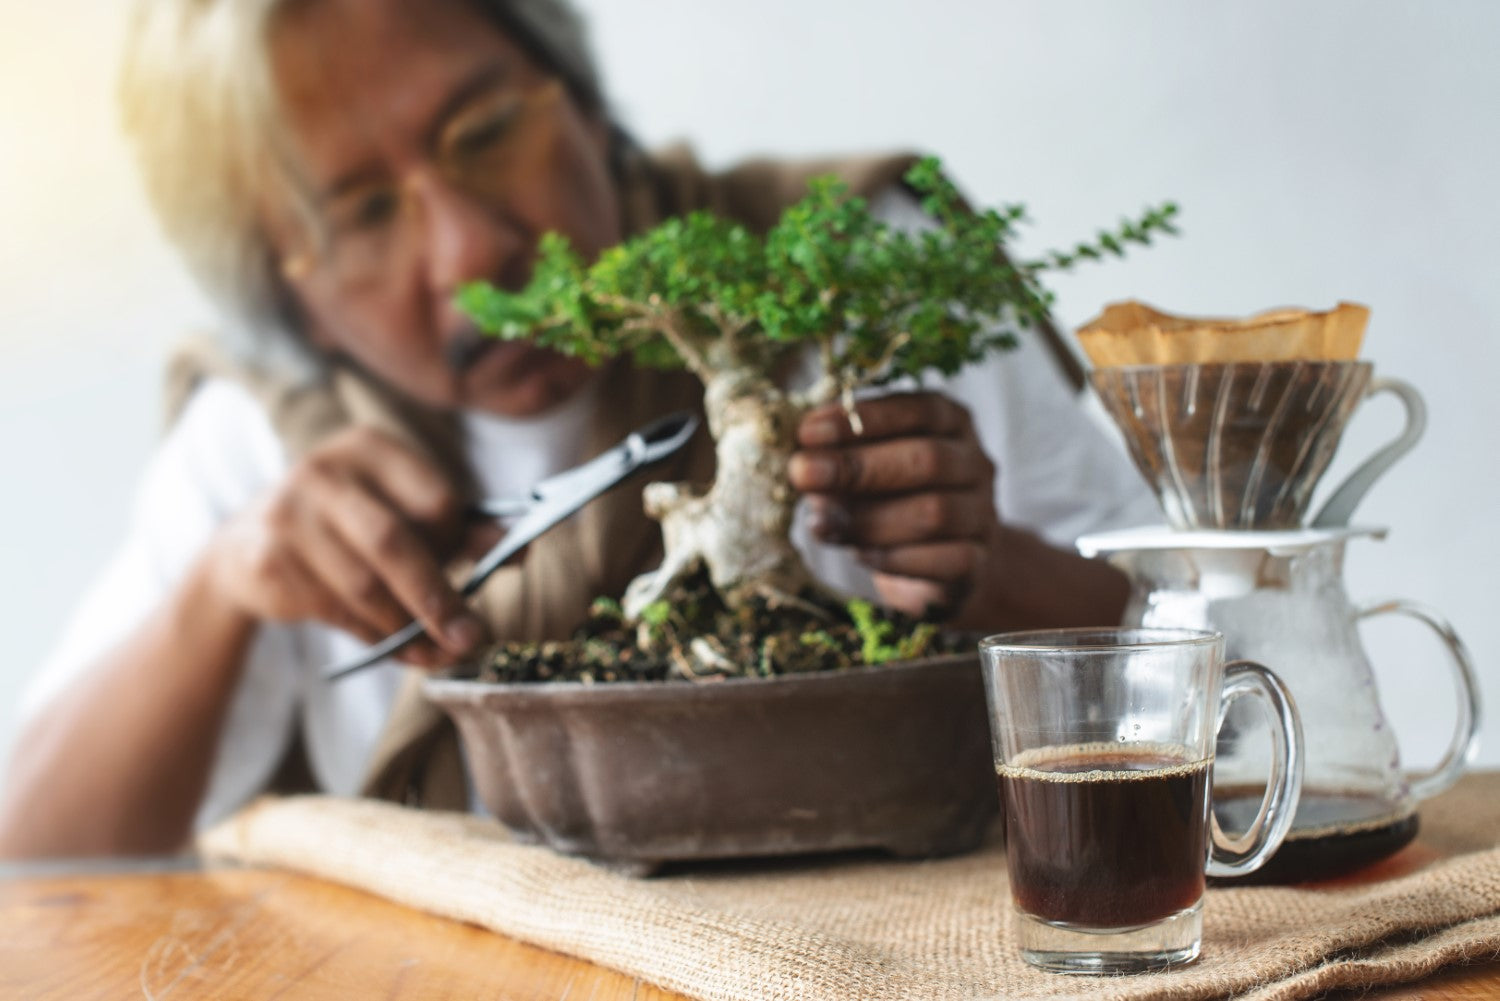 old man taking care of the plants with coffee on the side